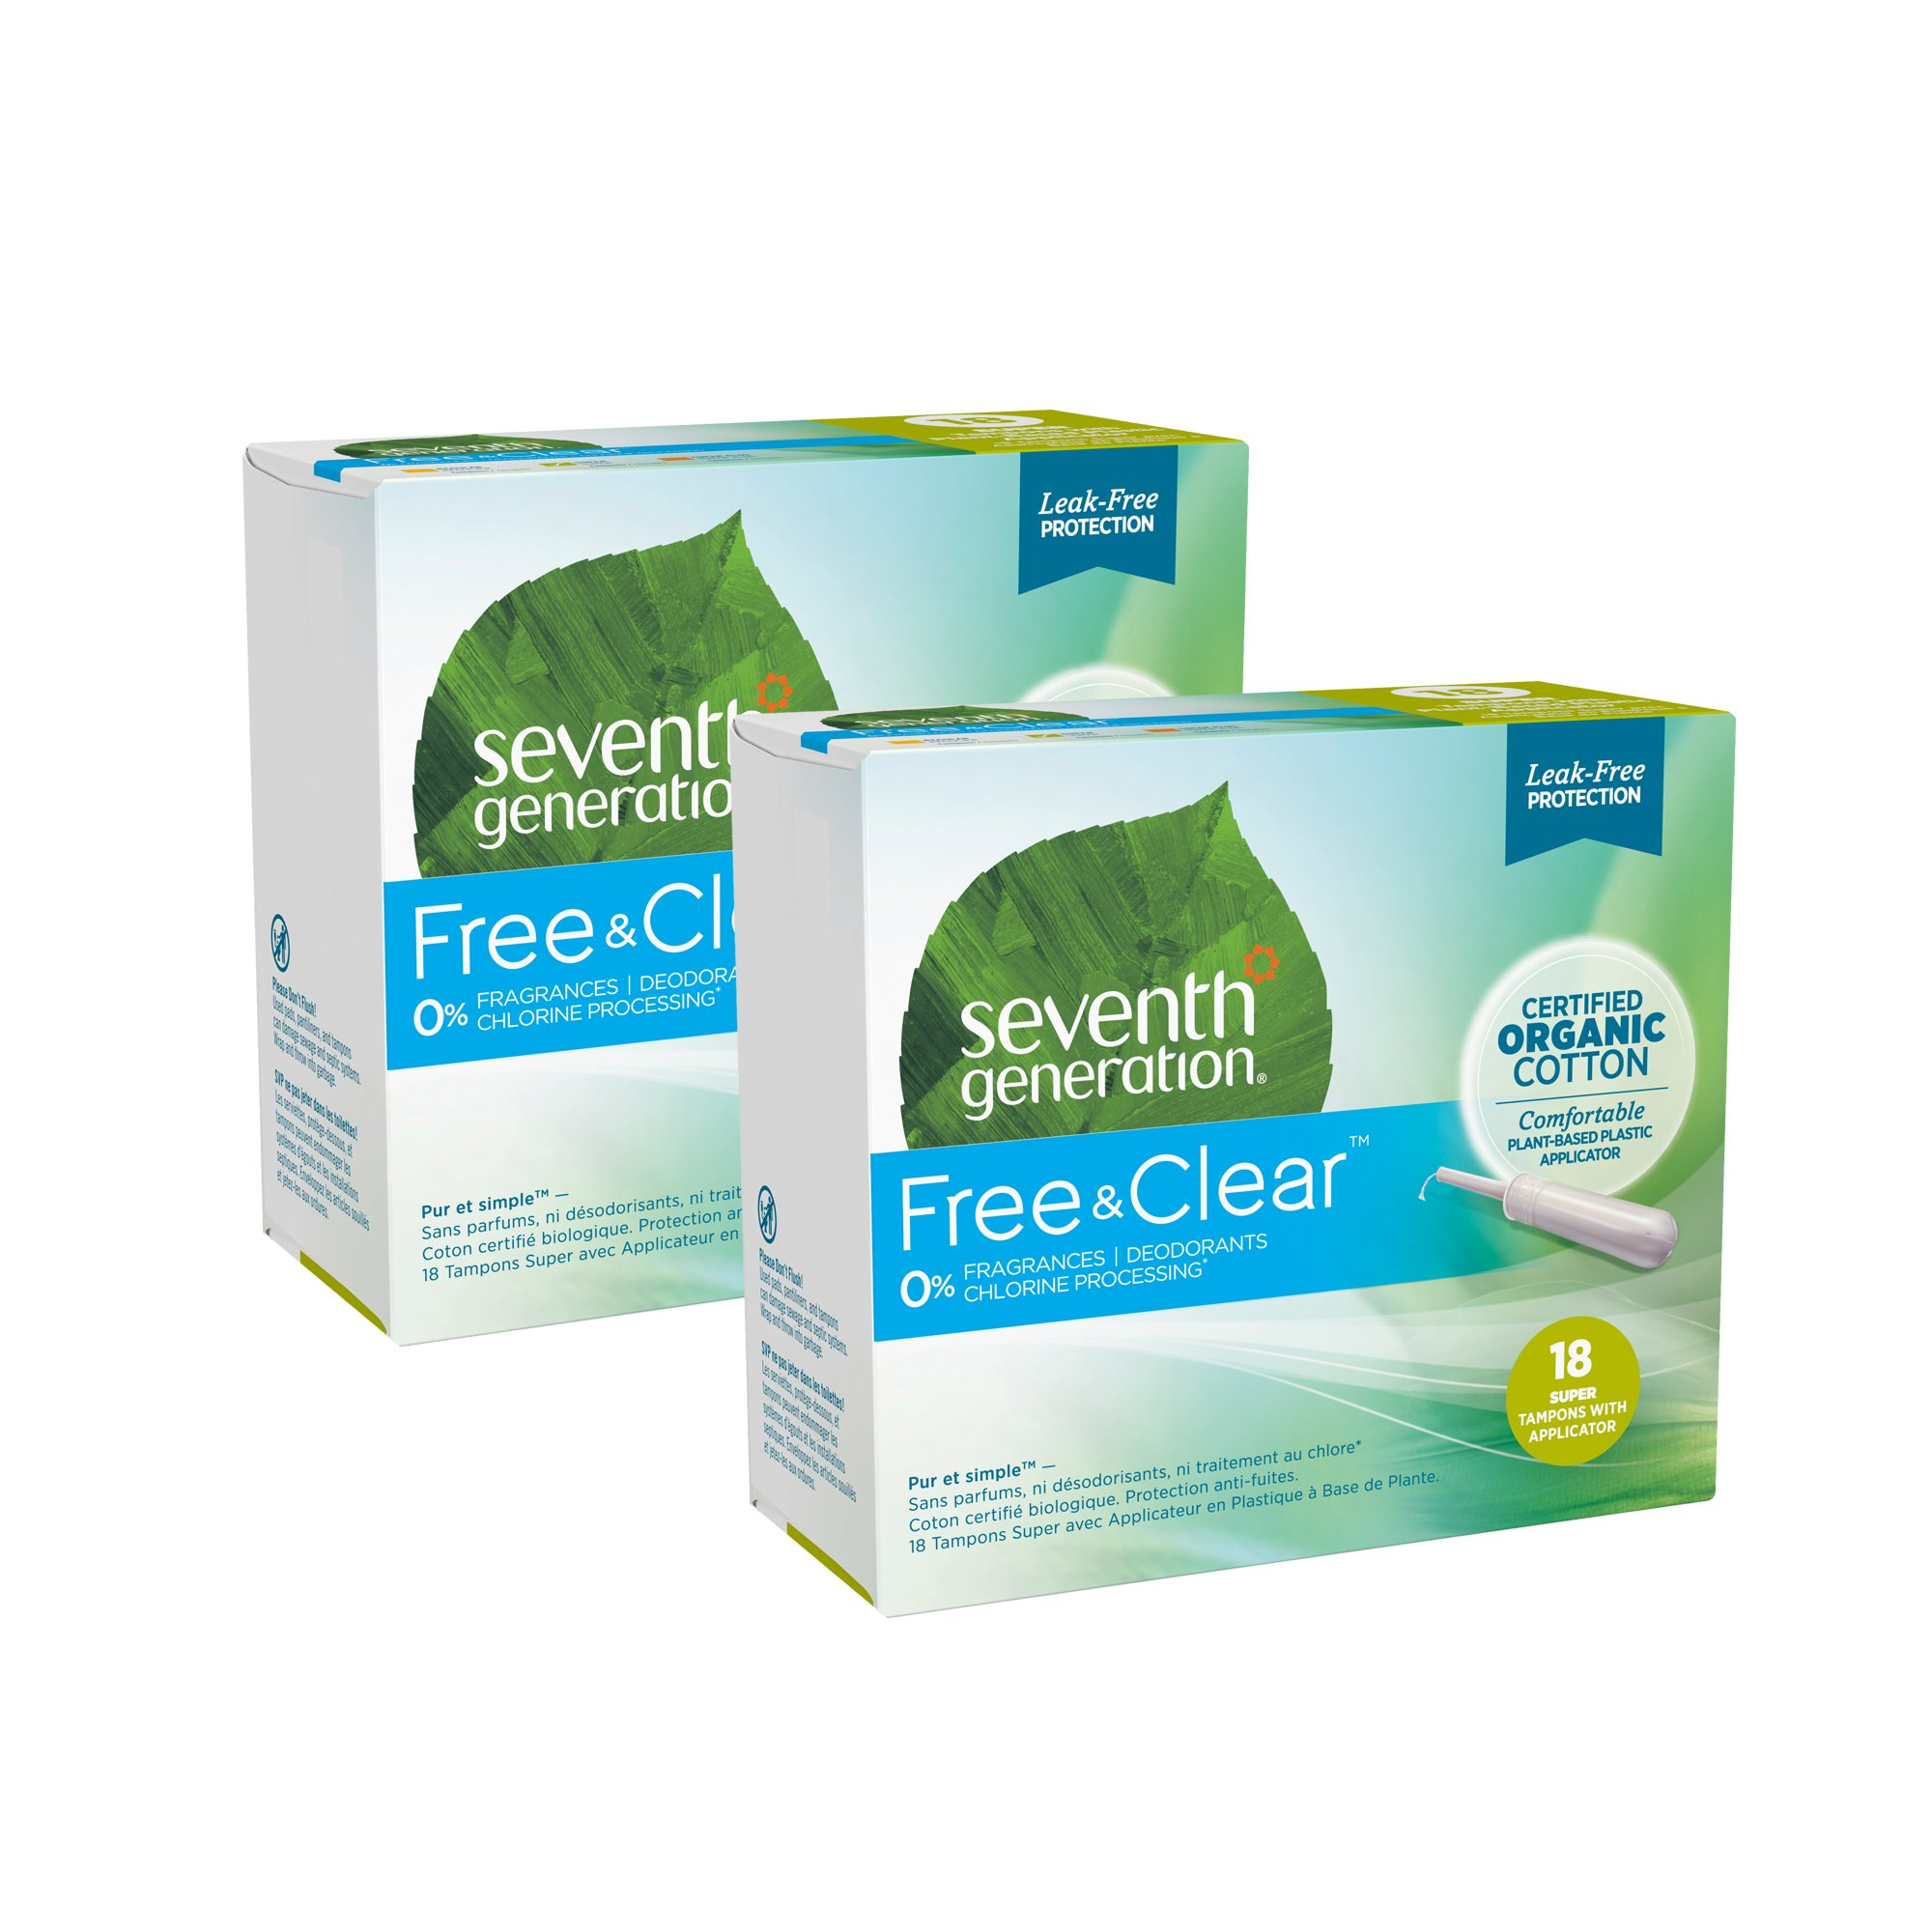 Seventh Generation offers organic cotton tampons, chlorine-free pads and pantiliners. They give you the leak protection you need with no added fragrances or deodorants.